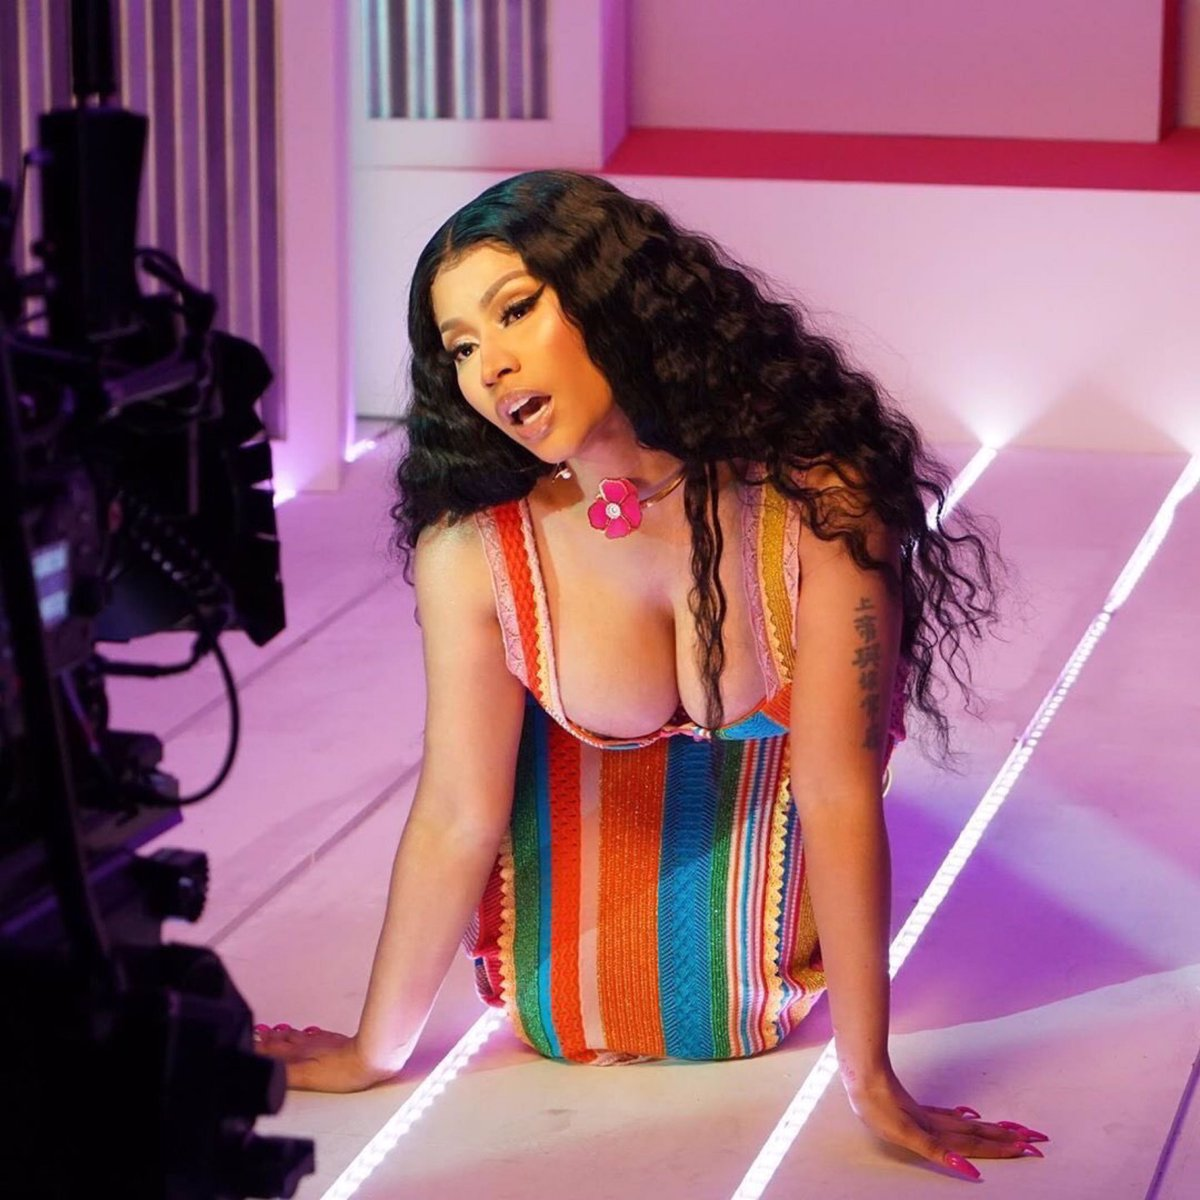 .@NICKIMINAJ has now surpassed 21 million subscribers on YouTube. She's just the 10th most-subscribed female artist on the platform.